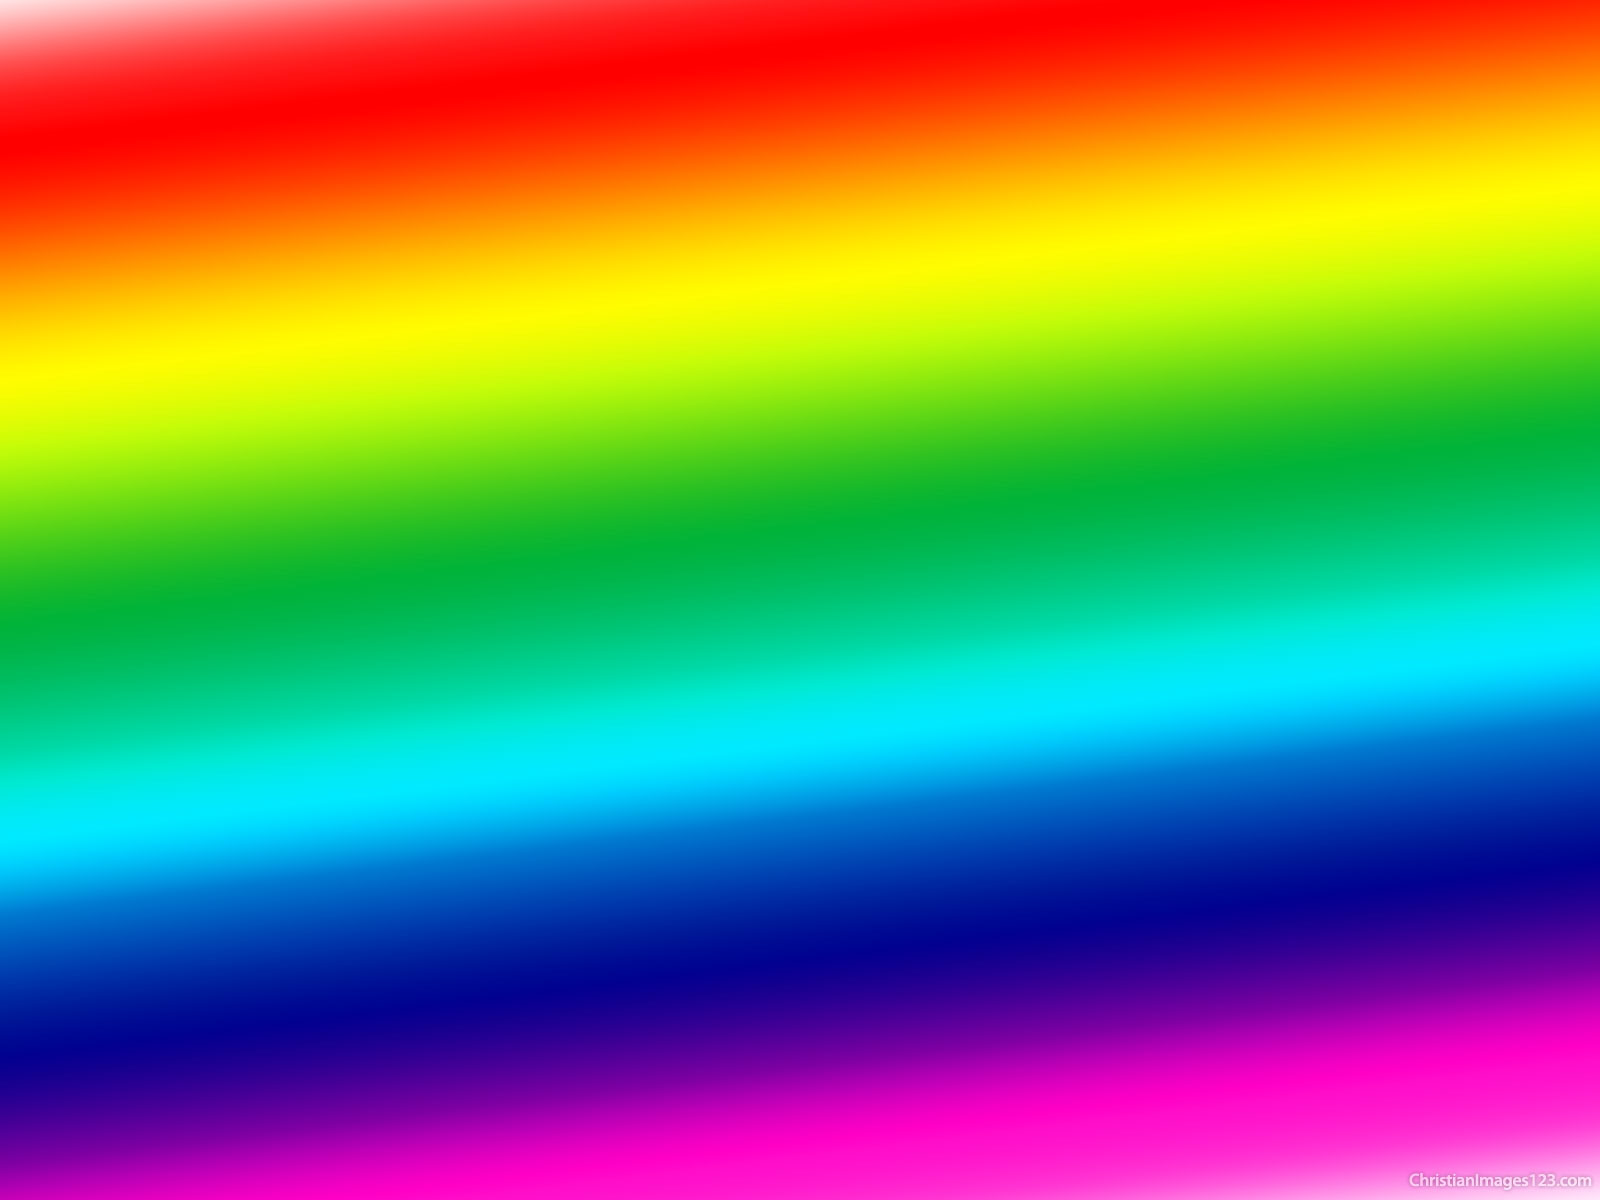 Neon rainbow colors with side stripes wallpaper #3619